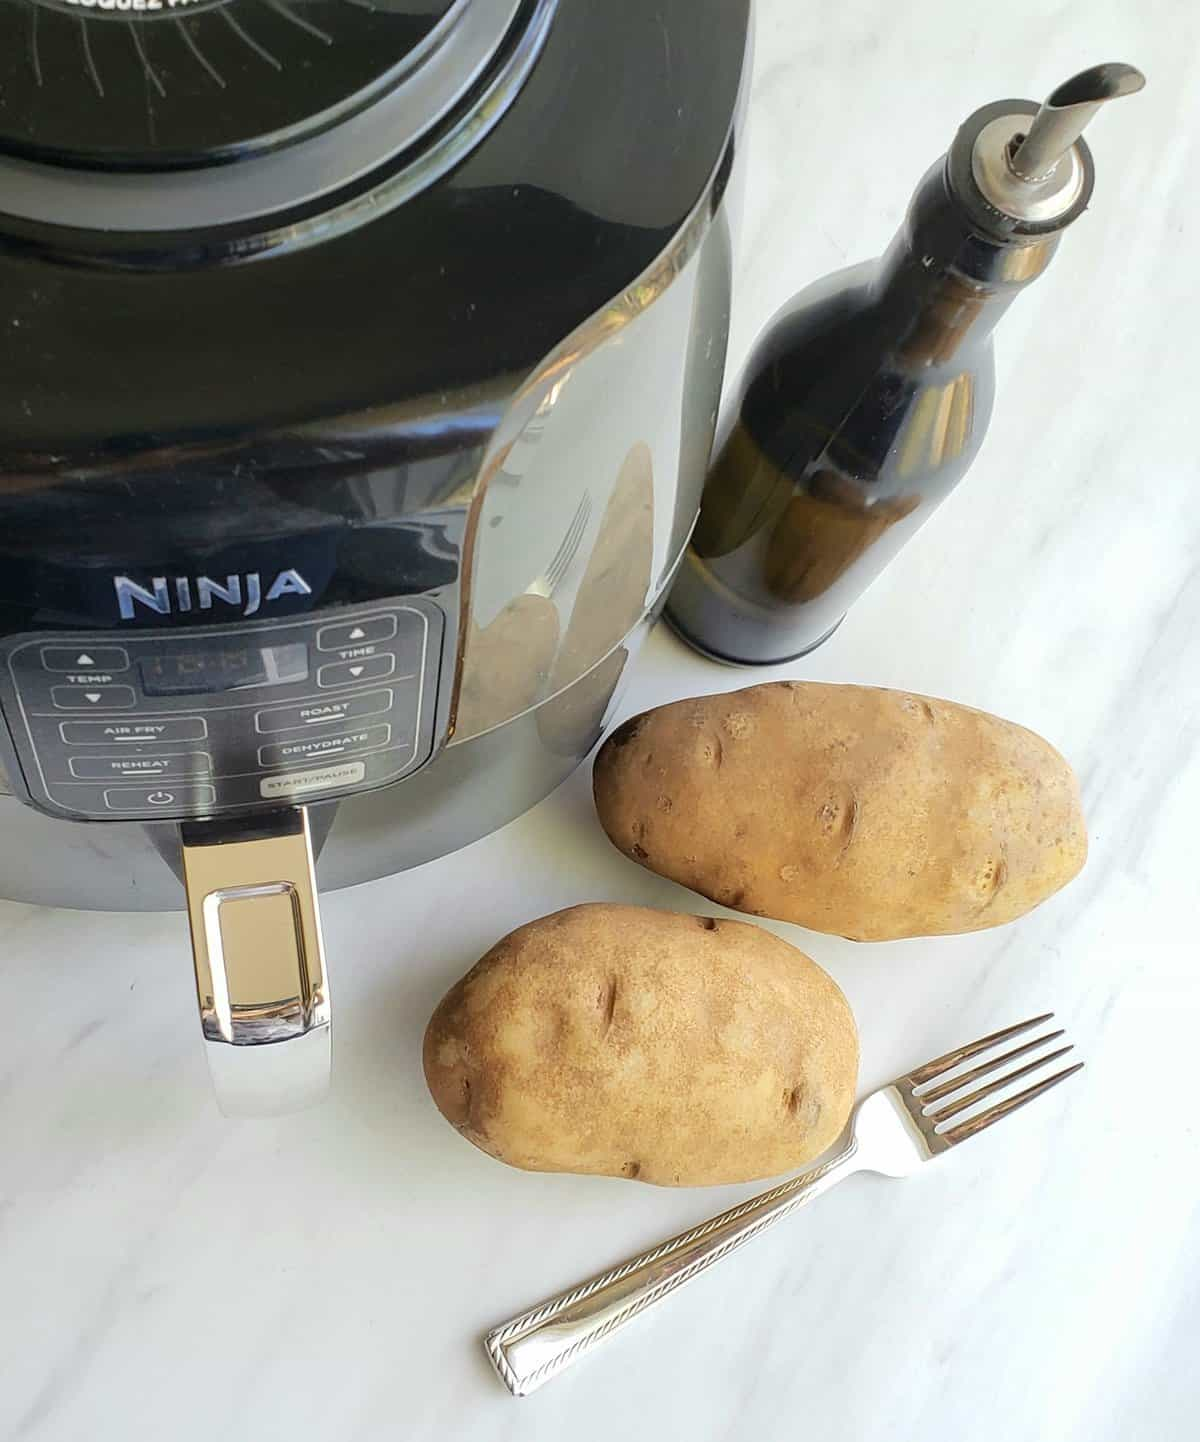 Air fryer, 2 baking potatoes, a fork and an oil dispenser on a white surface